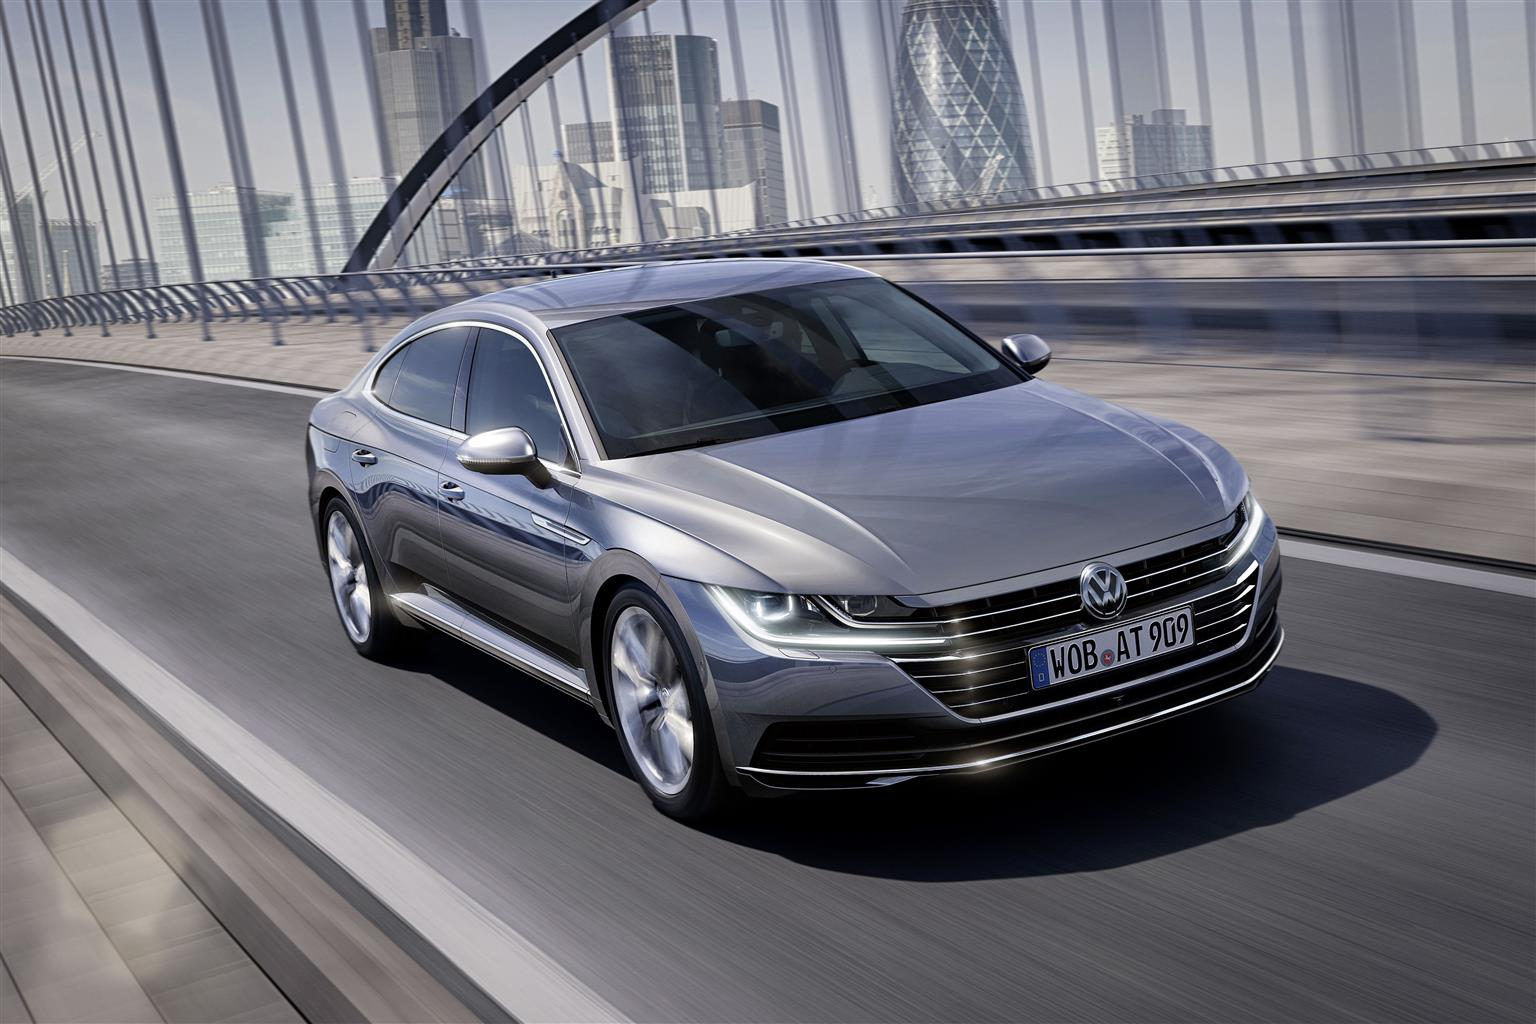 Golf Arteon